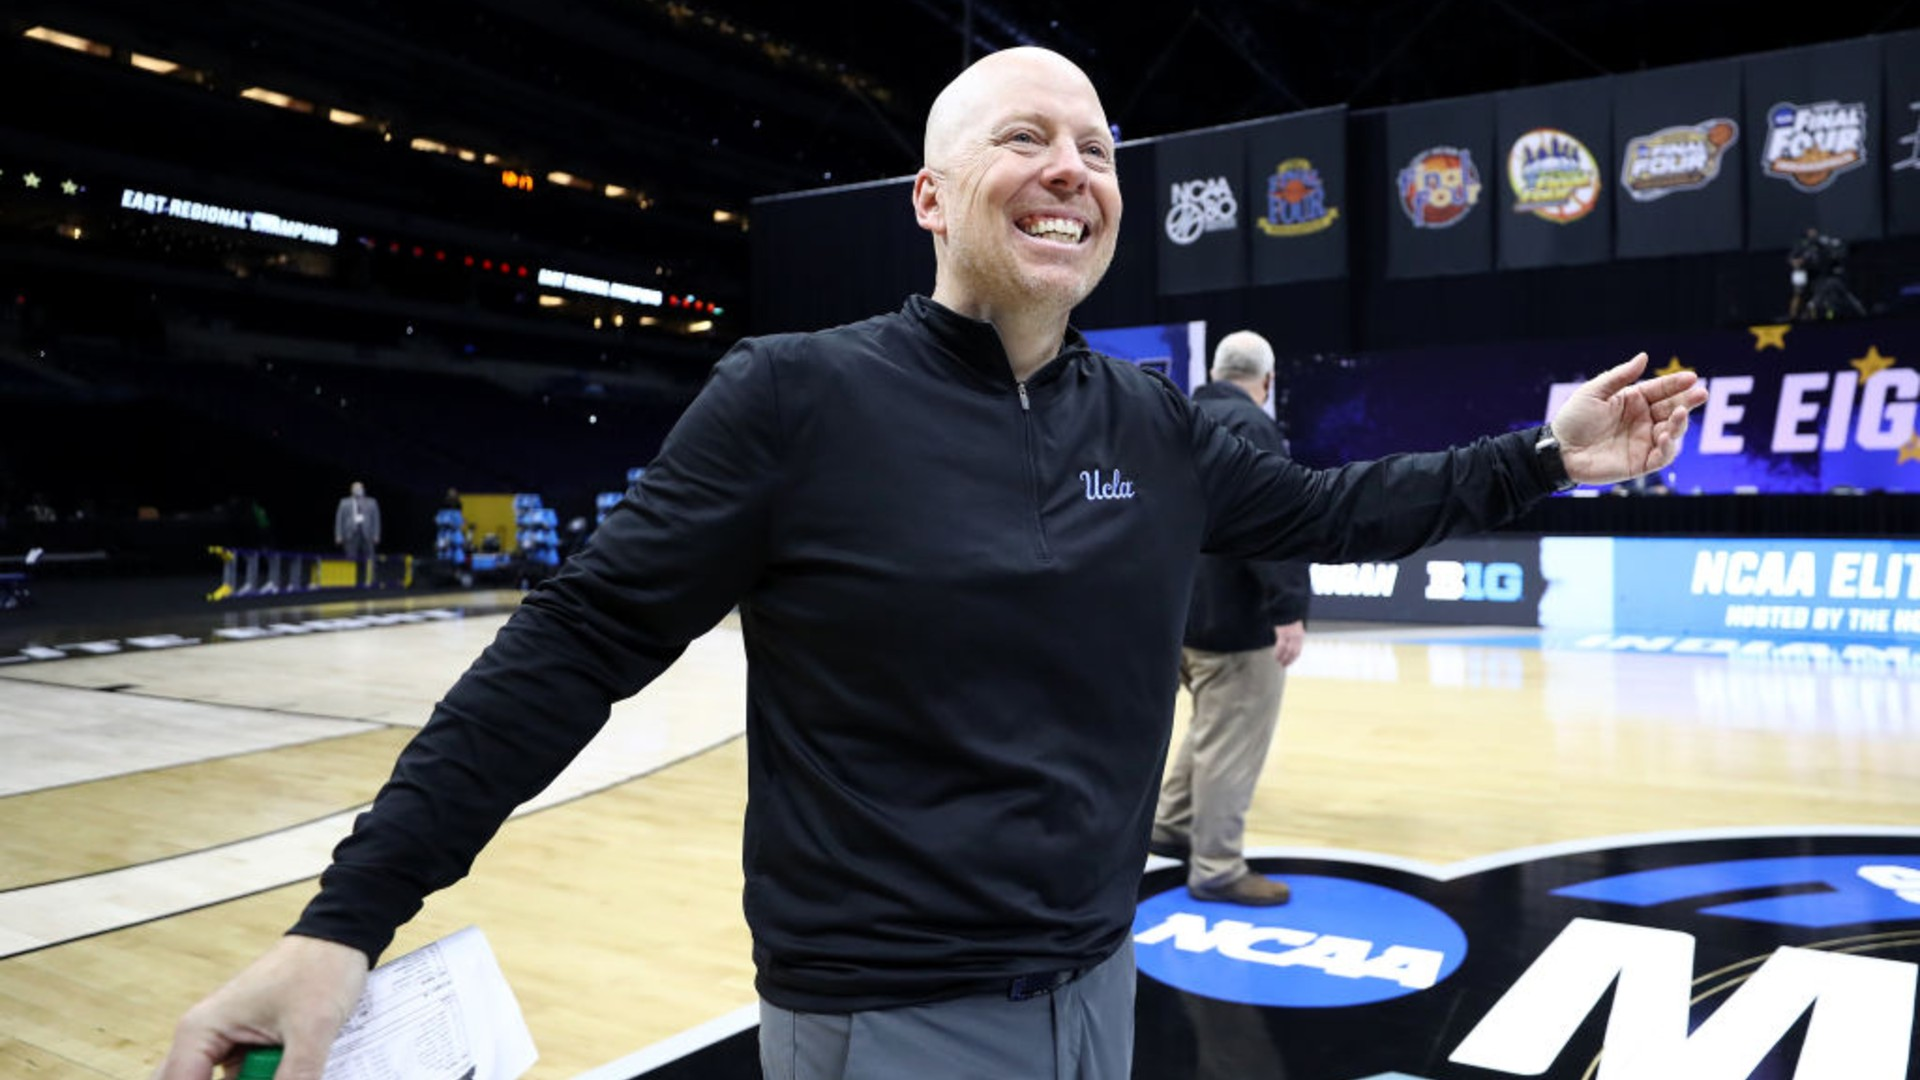 Head coach Mick Cronin of the UCLA Bruins celebrates defeating the Michigan Wolverines 51-49 in the Elite Eight round game of the 2021 NCAA Men's Basketball Tournament at Lucas Oil Stadium on March 30, 2021 in Indianapolis, Indiana. (Jamie Squire/Getty Images)